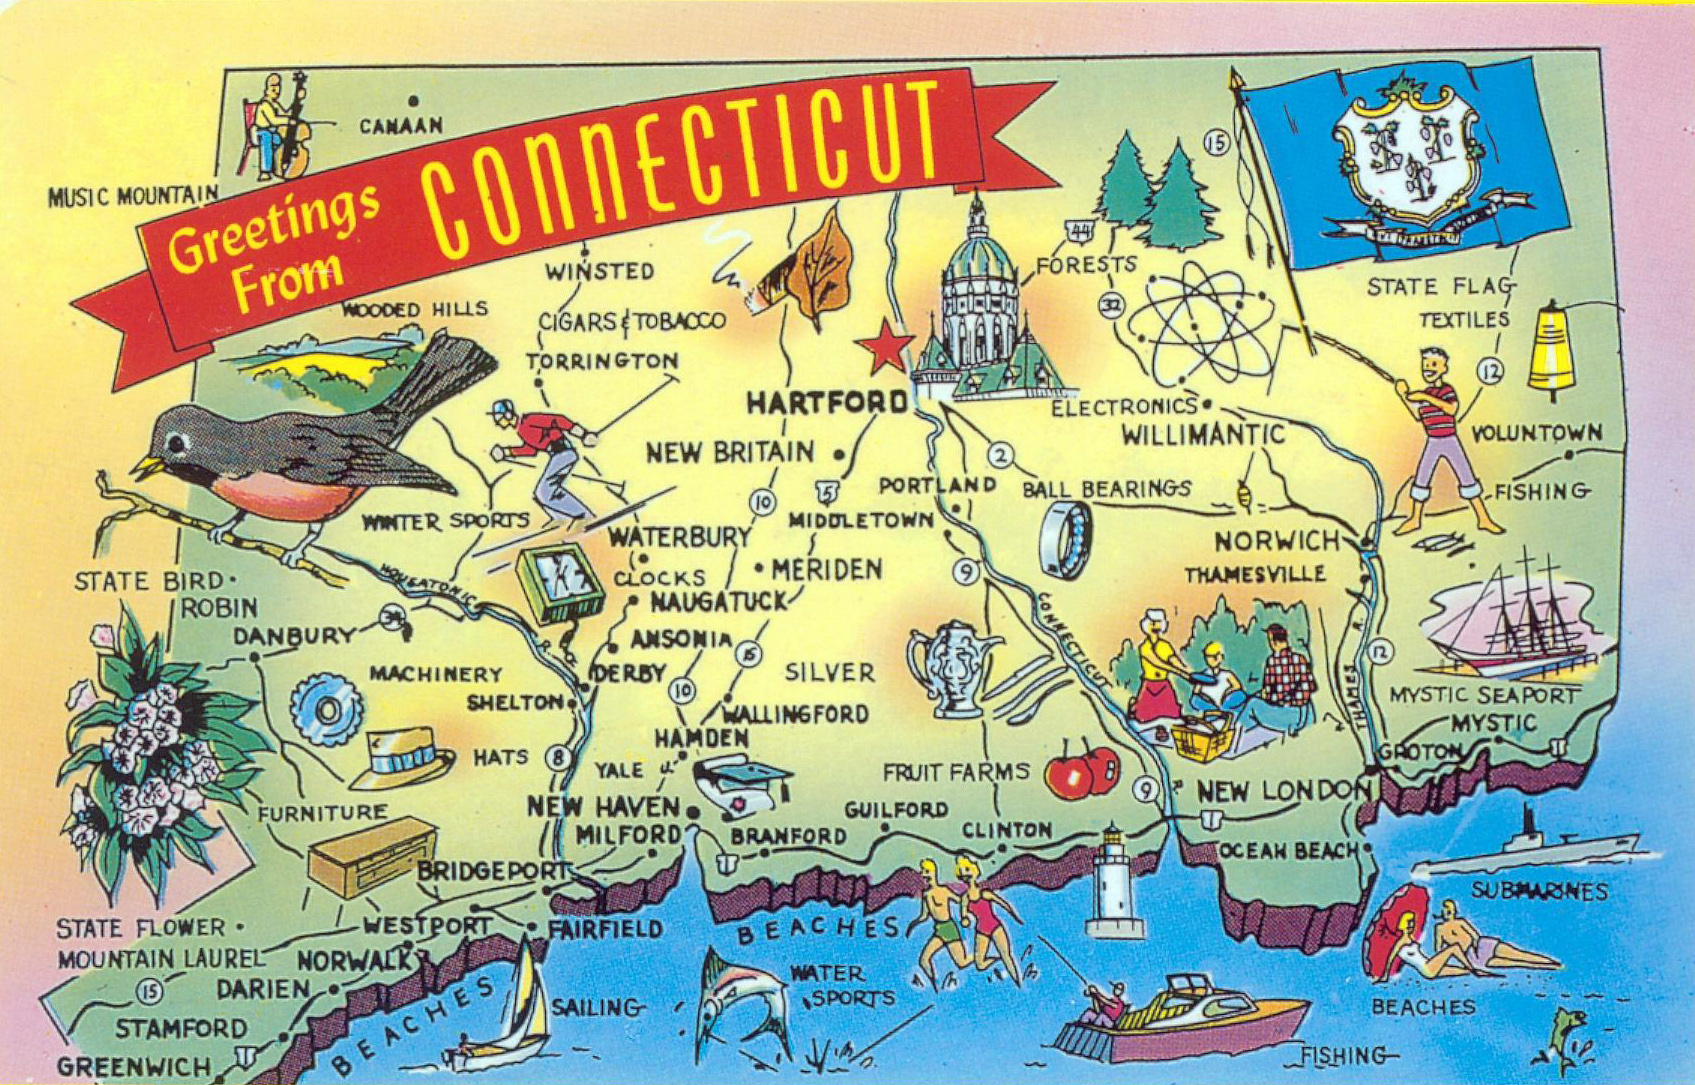 Large tourist illustrated map of Connecticut state | Connecticut